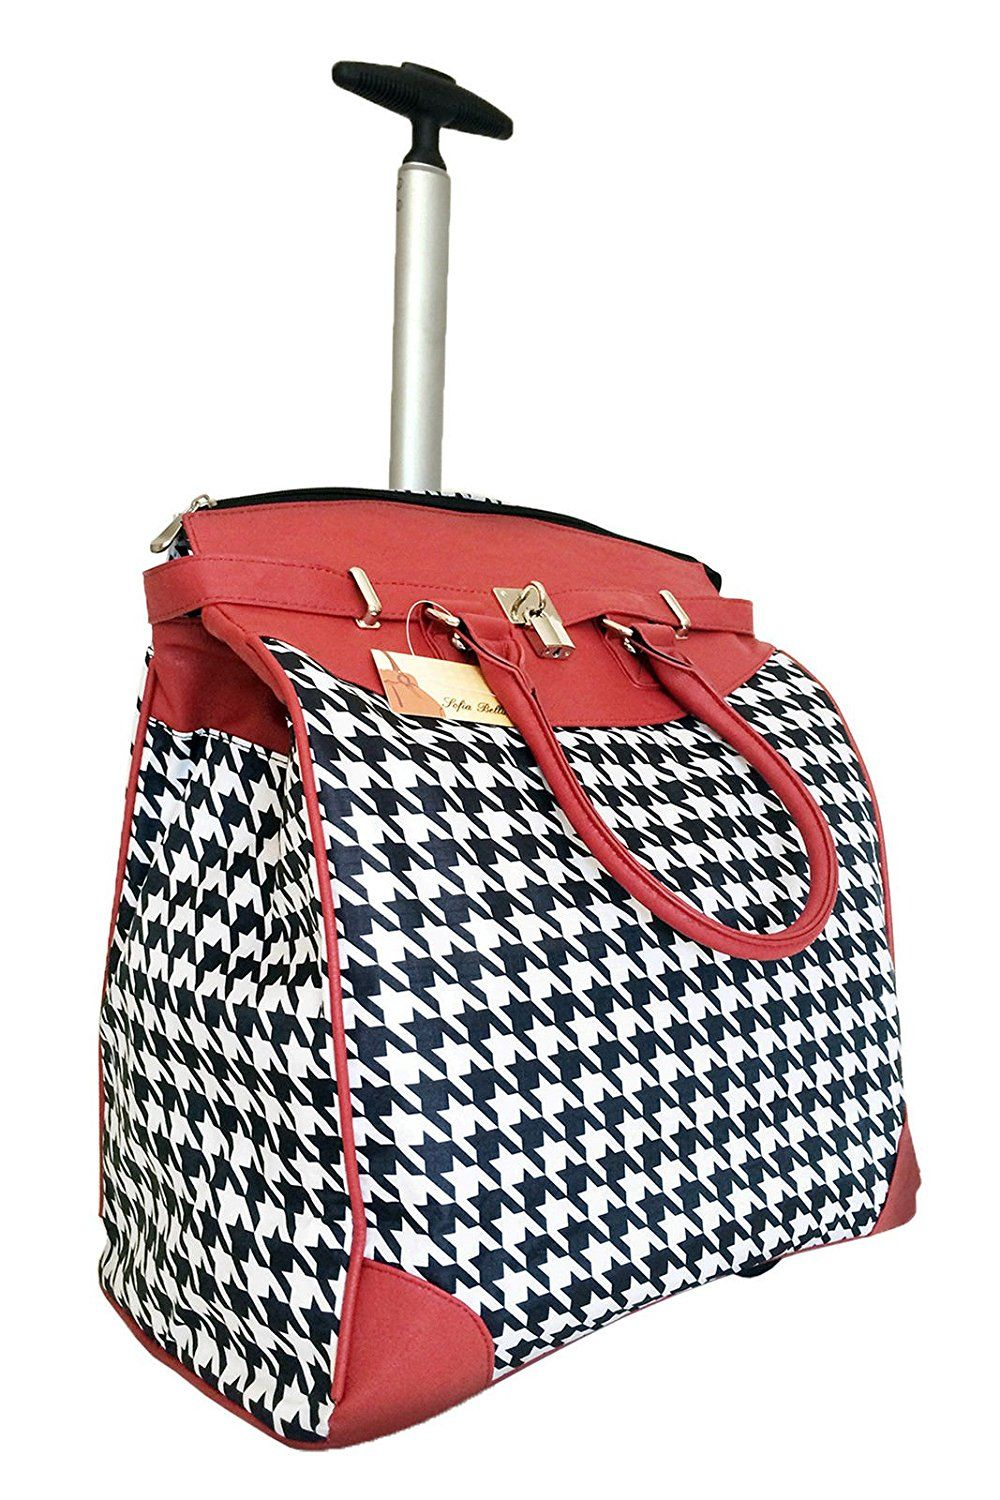 33 Teacher Bags That Will Hold Up To Toting Laptops Essays Snacks And More Teacher Bags Laptop Tote Bag Teacher Tote Bags